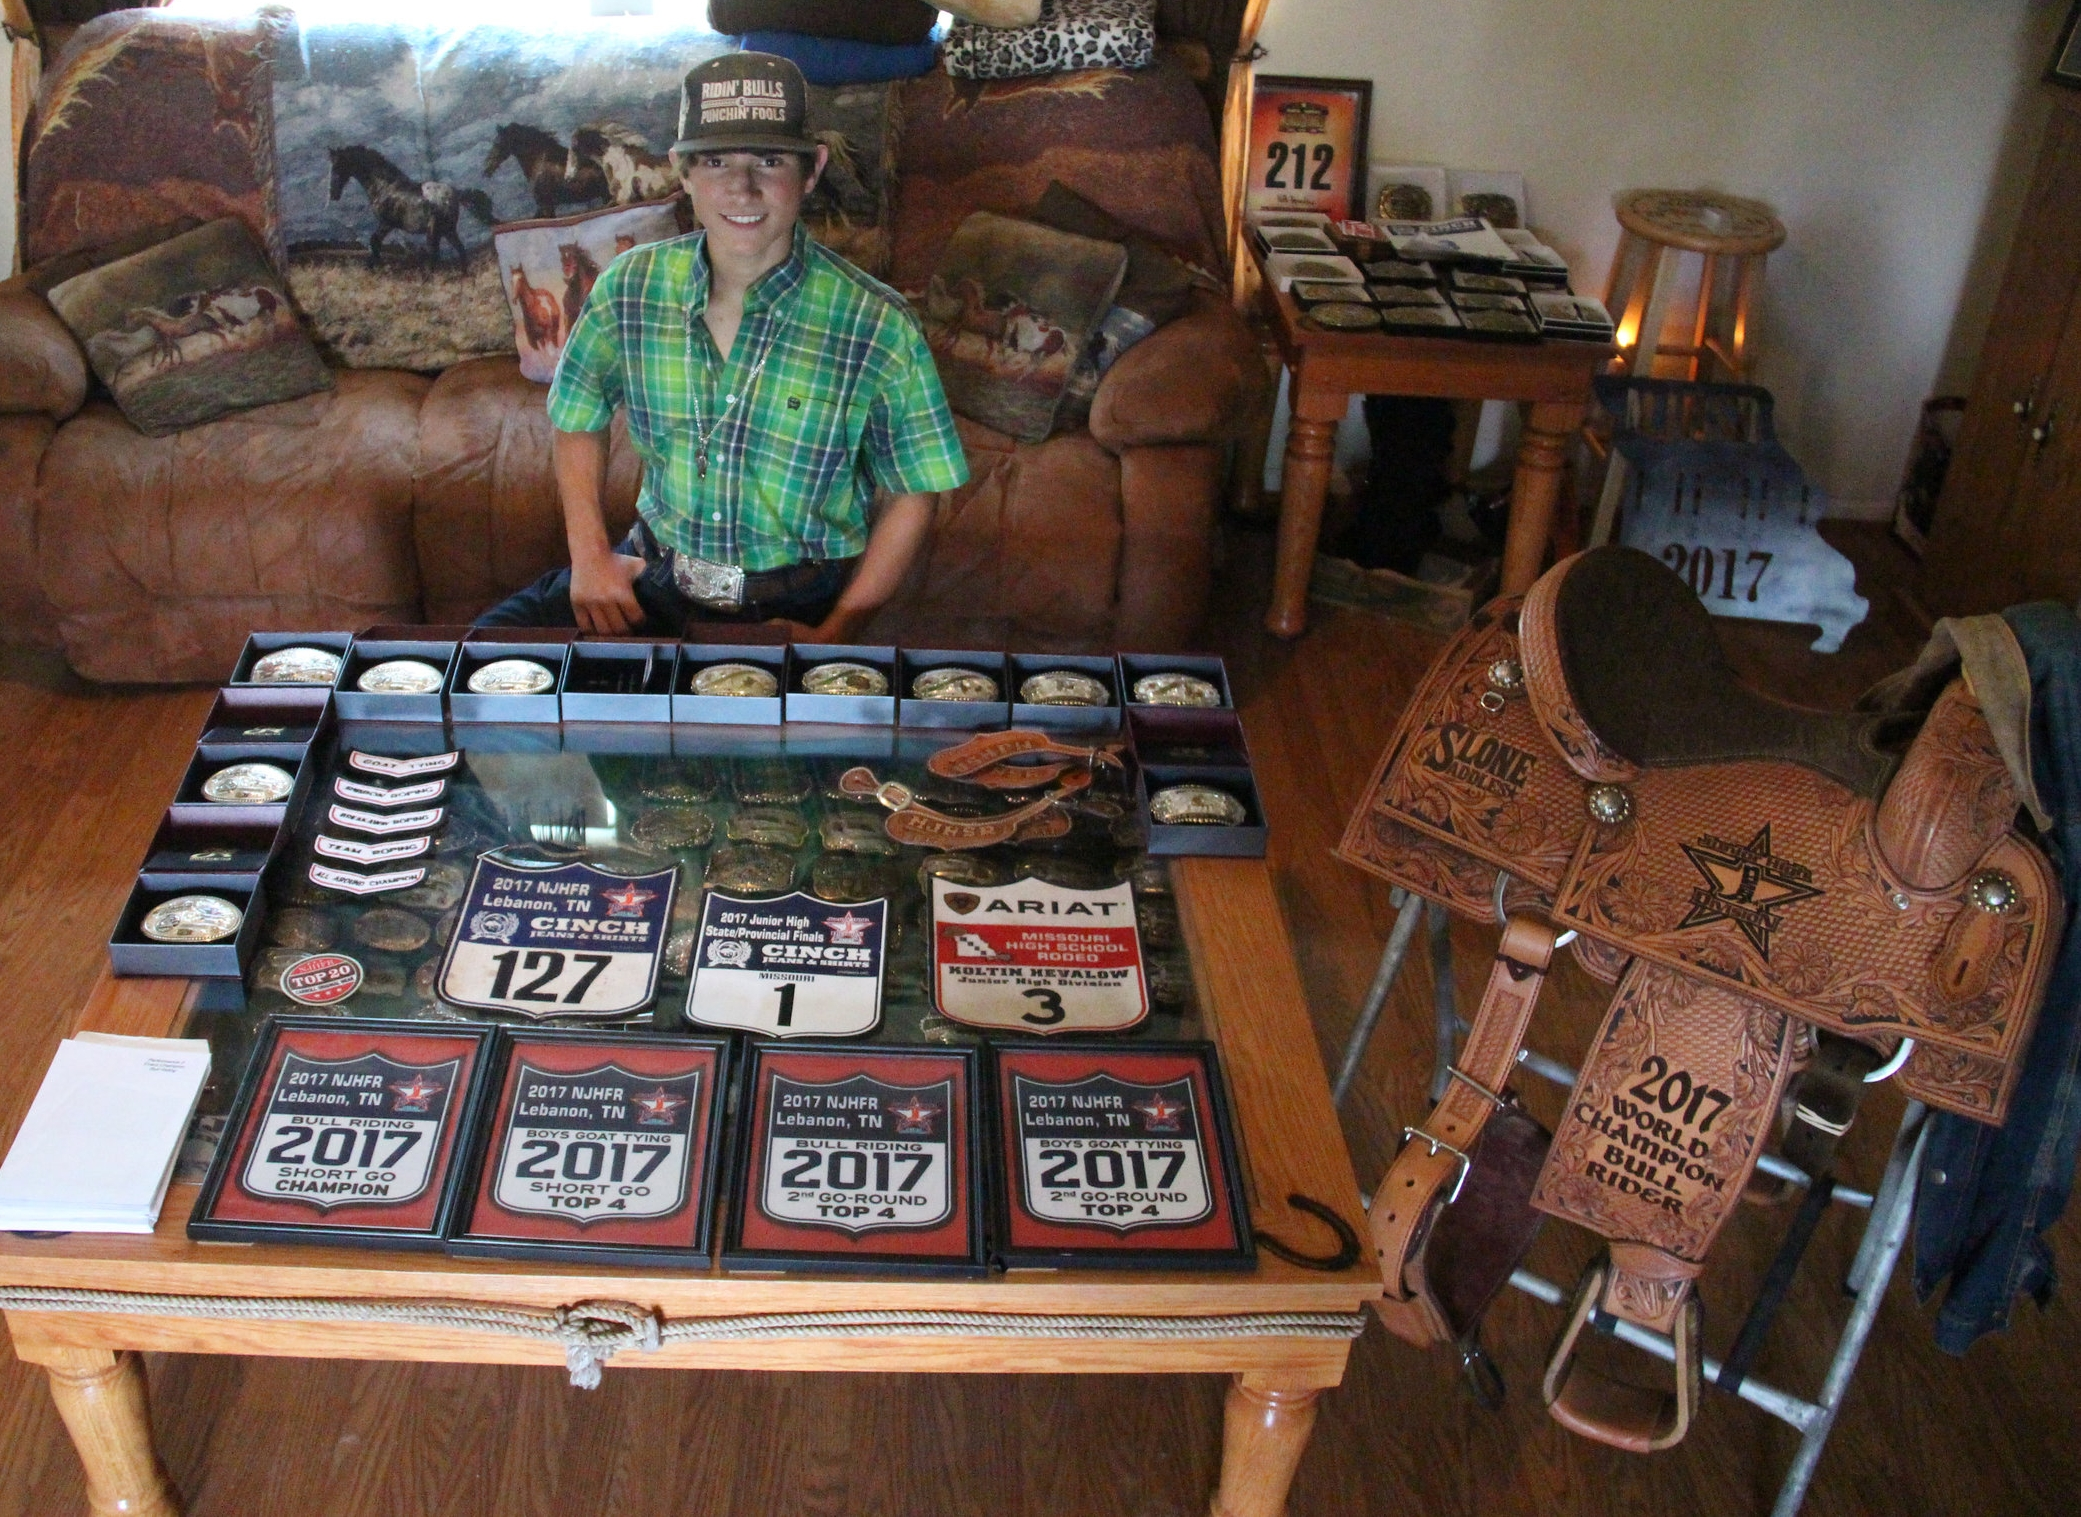 ROSS MARTIN/Citizen photo Koltin Hevalow, who will be a freshman this year at Platte County High School, poses in his living room with his numerous rodeo awards won during his youth career. He recently won a saddle for capturing the National High School Rodeo Association (NHSRA) Junior High Division junior bull riding world championship.